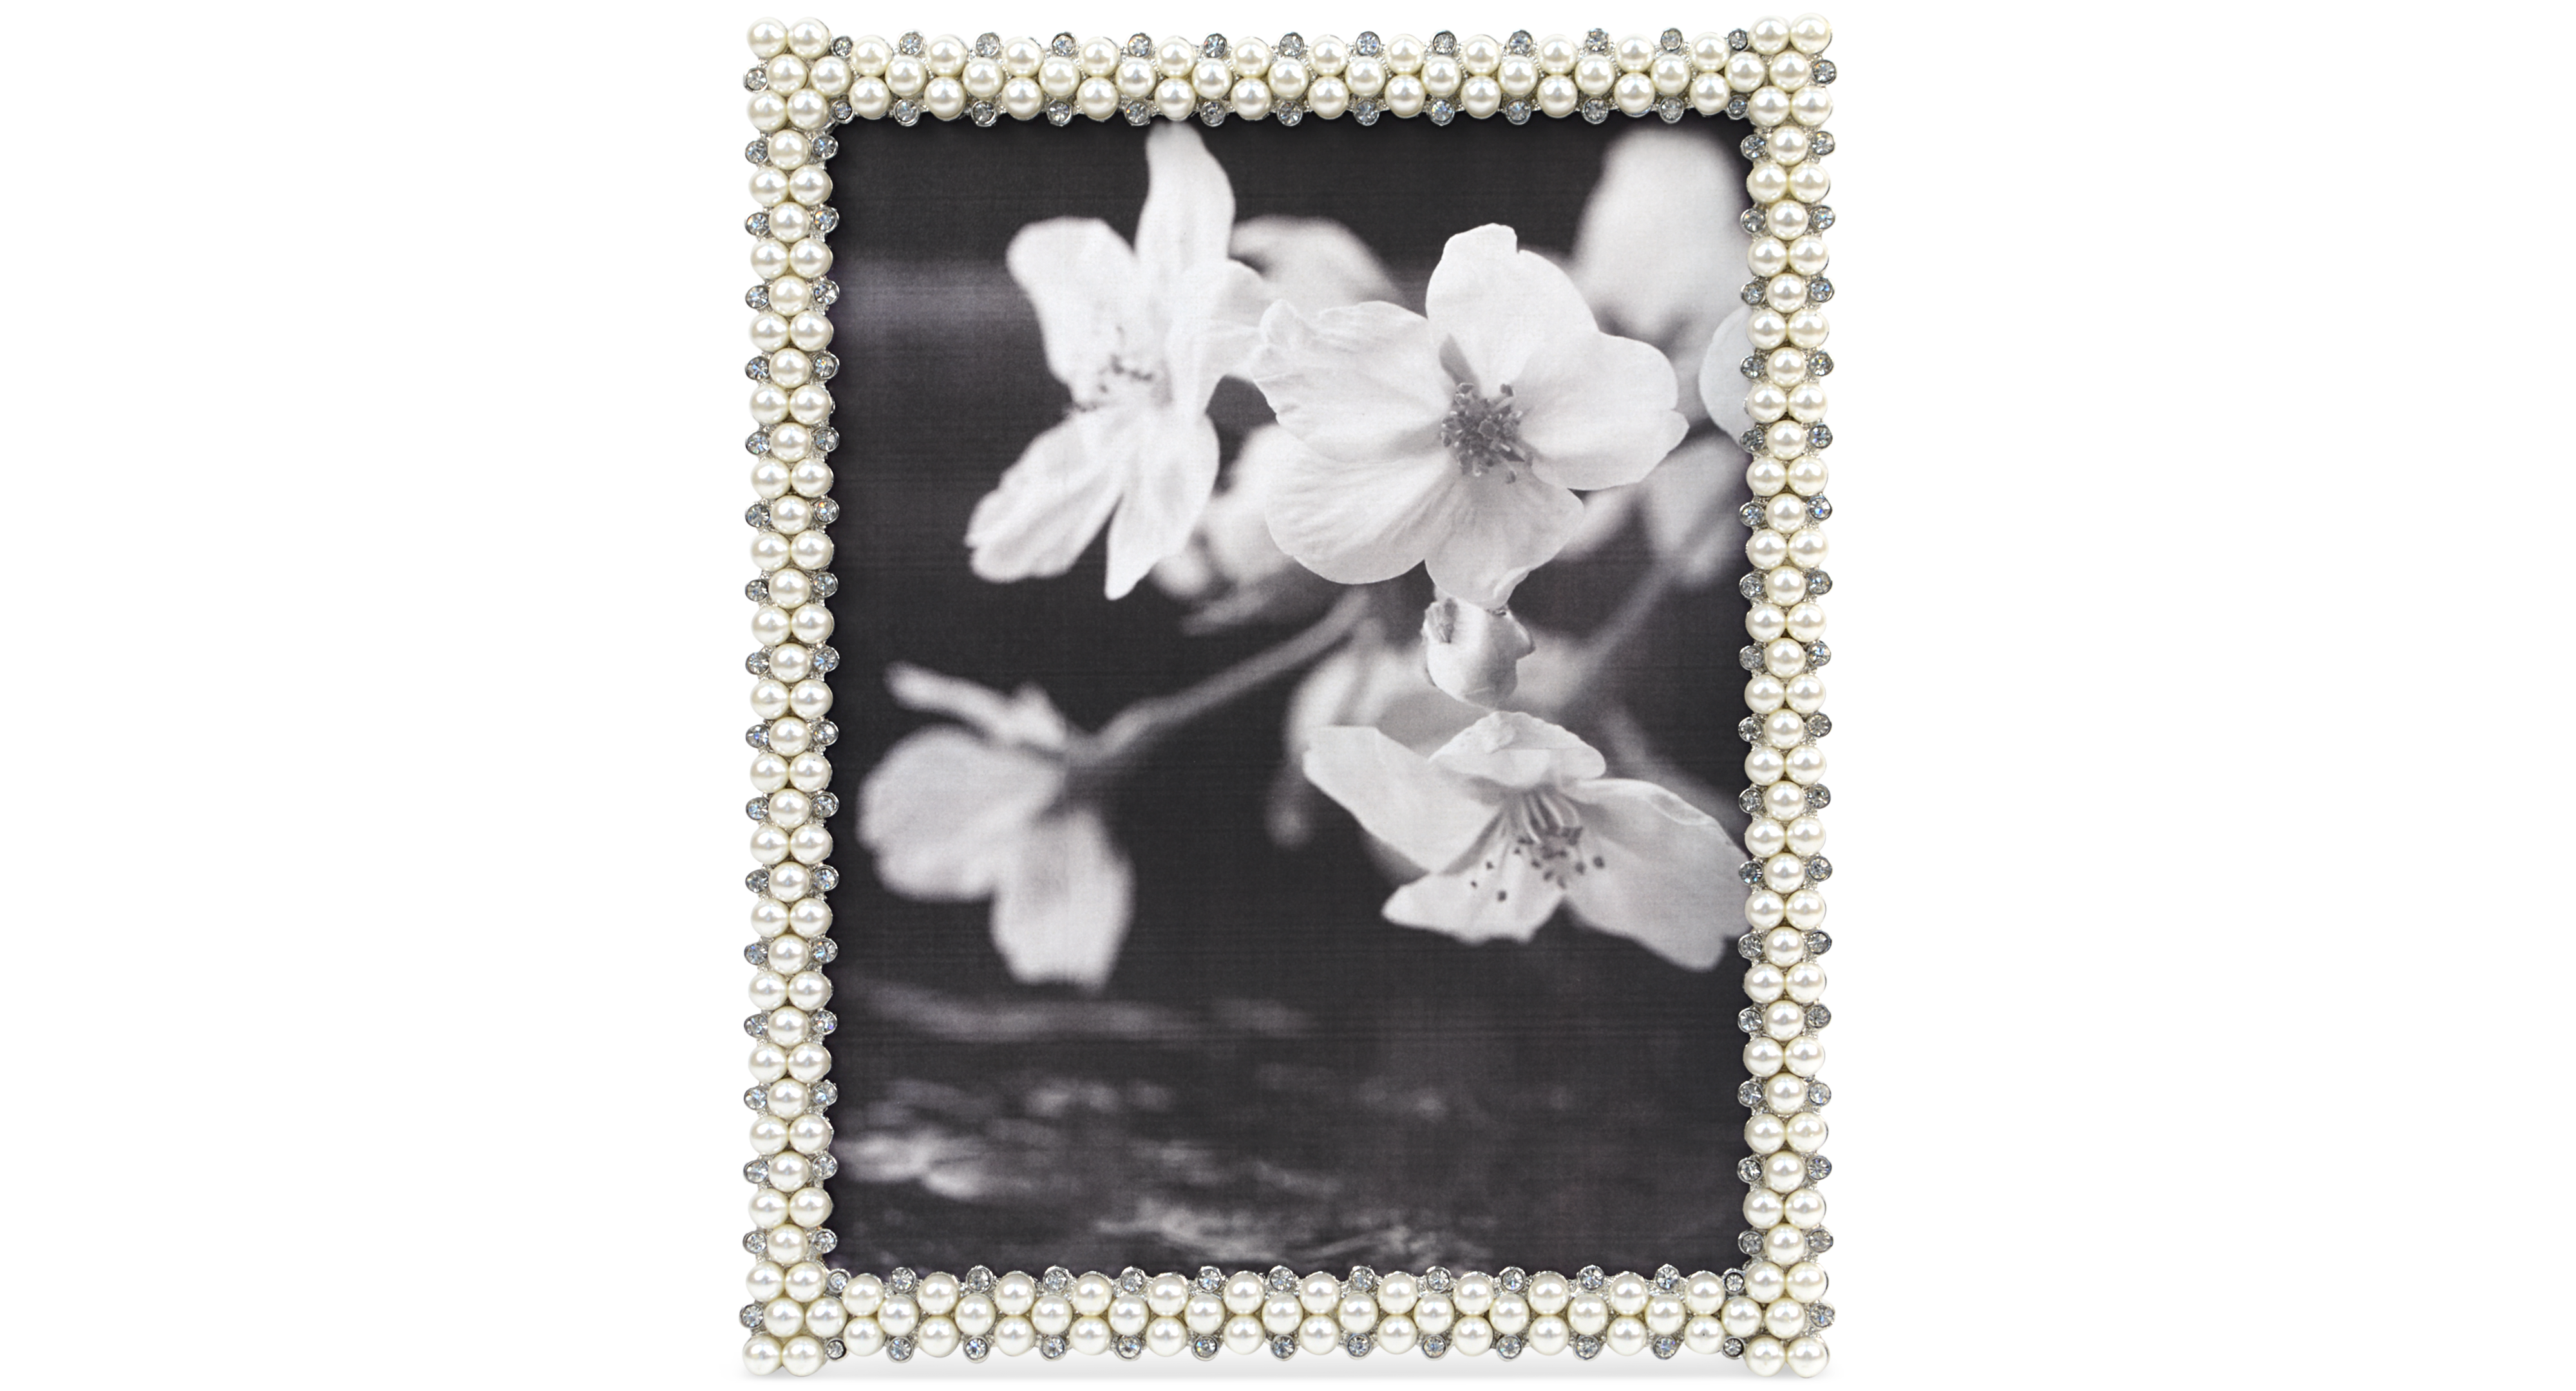 Concepts in time gathered pearls 8 x 10 frame products concepts in time gathered pearls 8 x 10 frame picture frames macys jeuxipadfo Choice Image